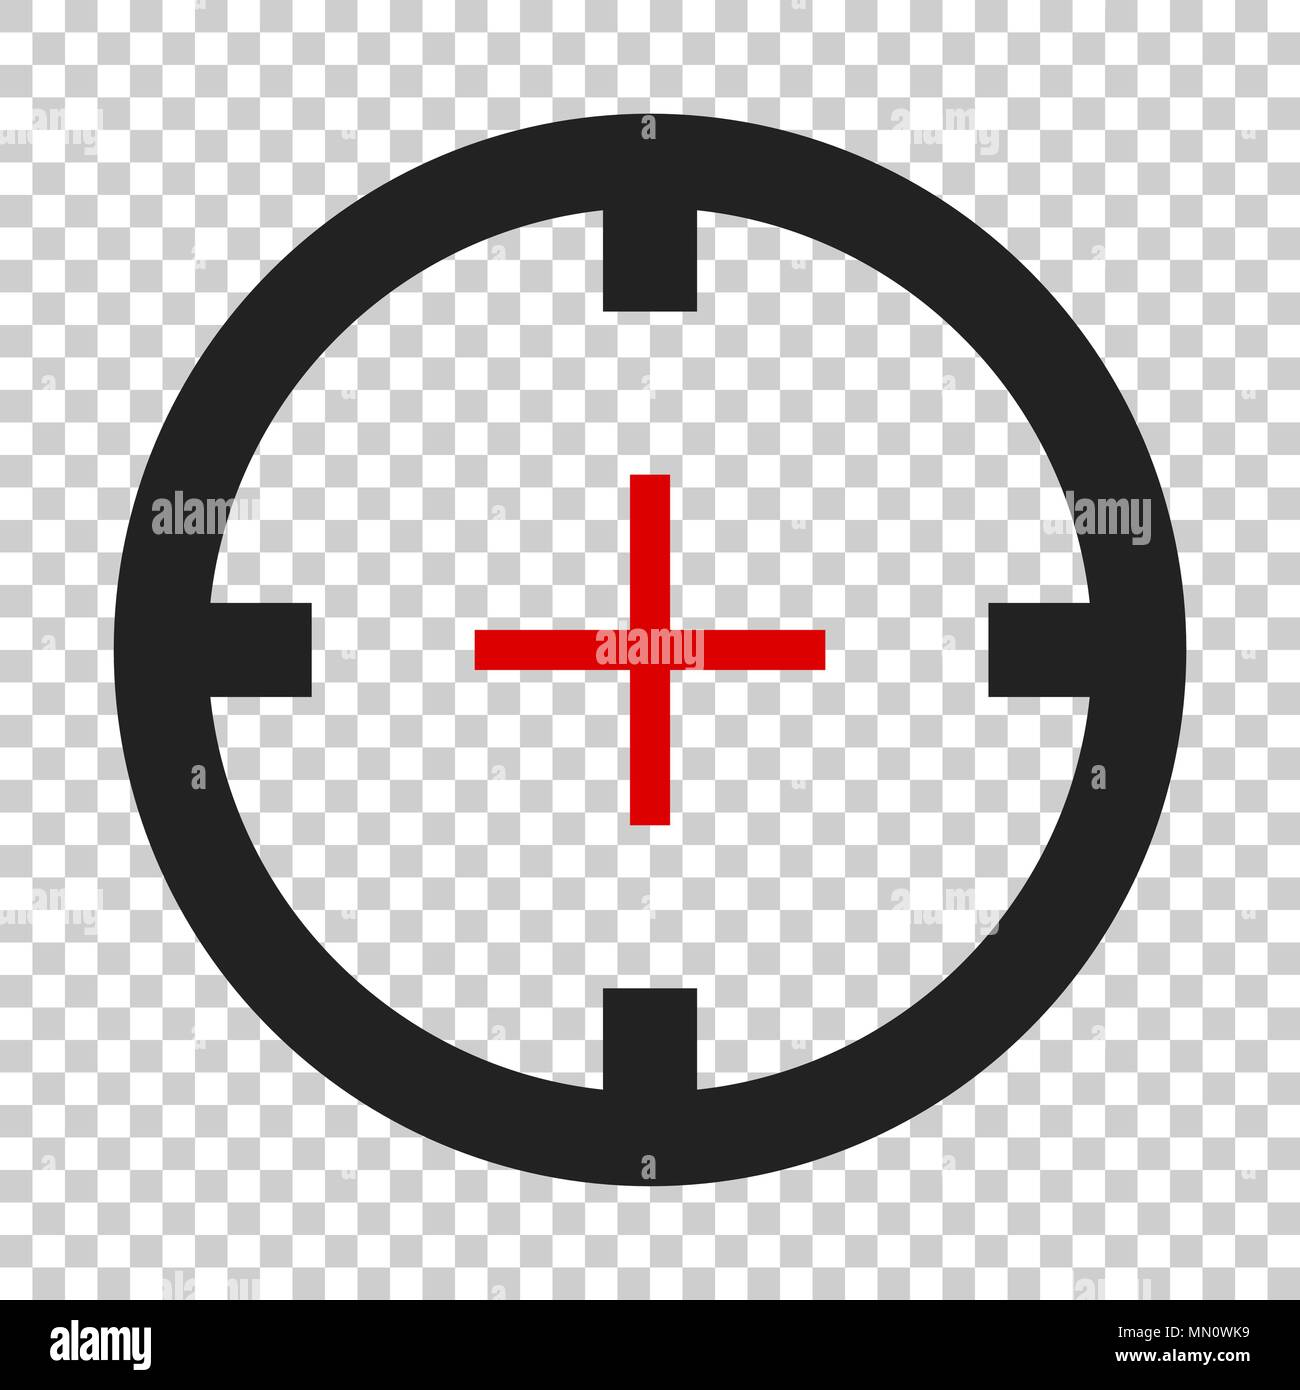 Shooting Target Vector Icon In Flat Style Aim Sniper Symbol Illustration On Isolated Transparent Background Business Concept